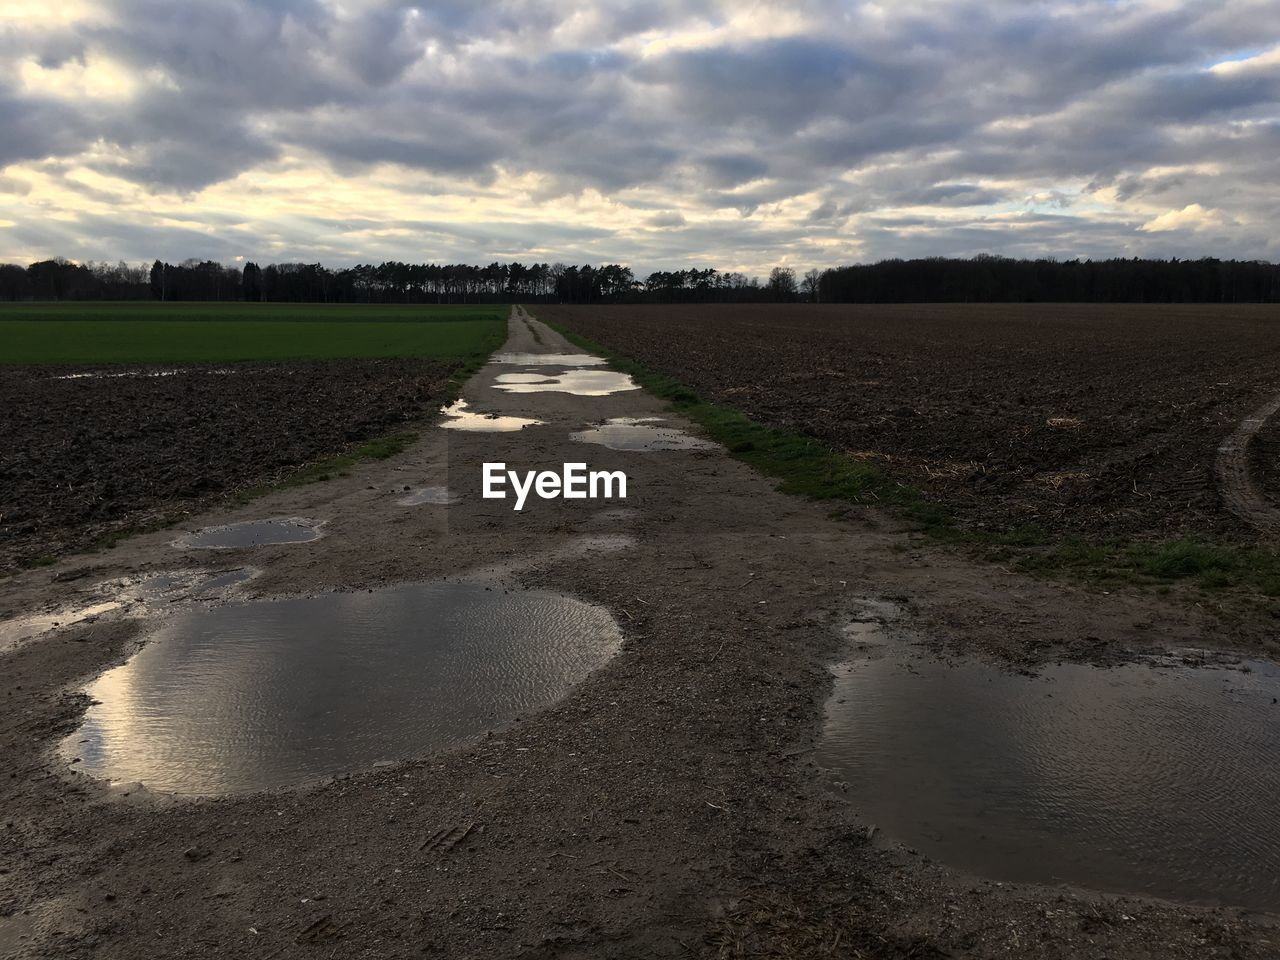 cloud - sky, sky, water, nature, land, landscape, tranquility, scenics - nature, no people, beauty in nature, tranquil scene, dirt, field, day, environment, direction, puddle, rural scene, road, outdoors, mud